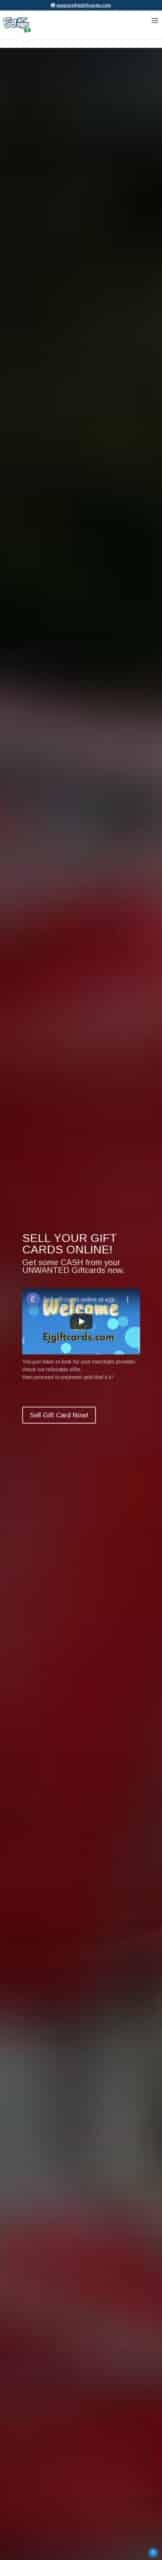 EJ Gift Cards Coupon